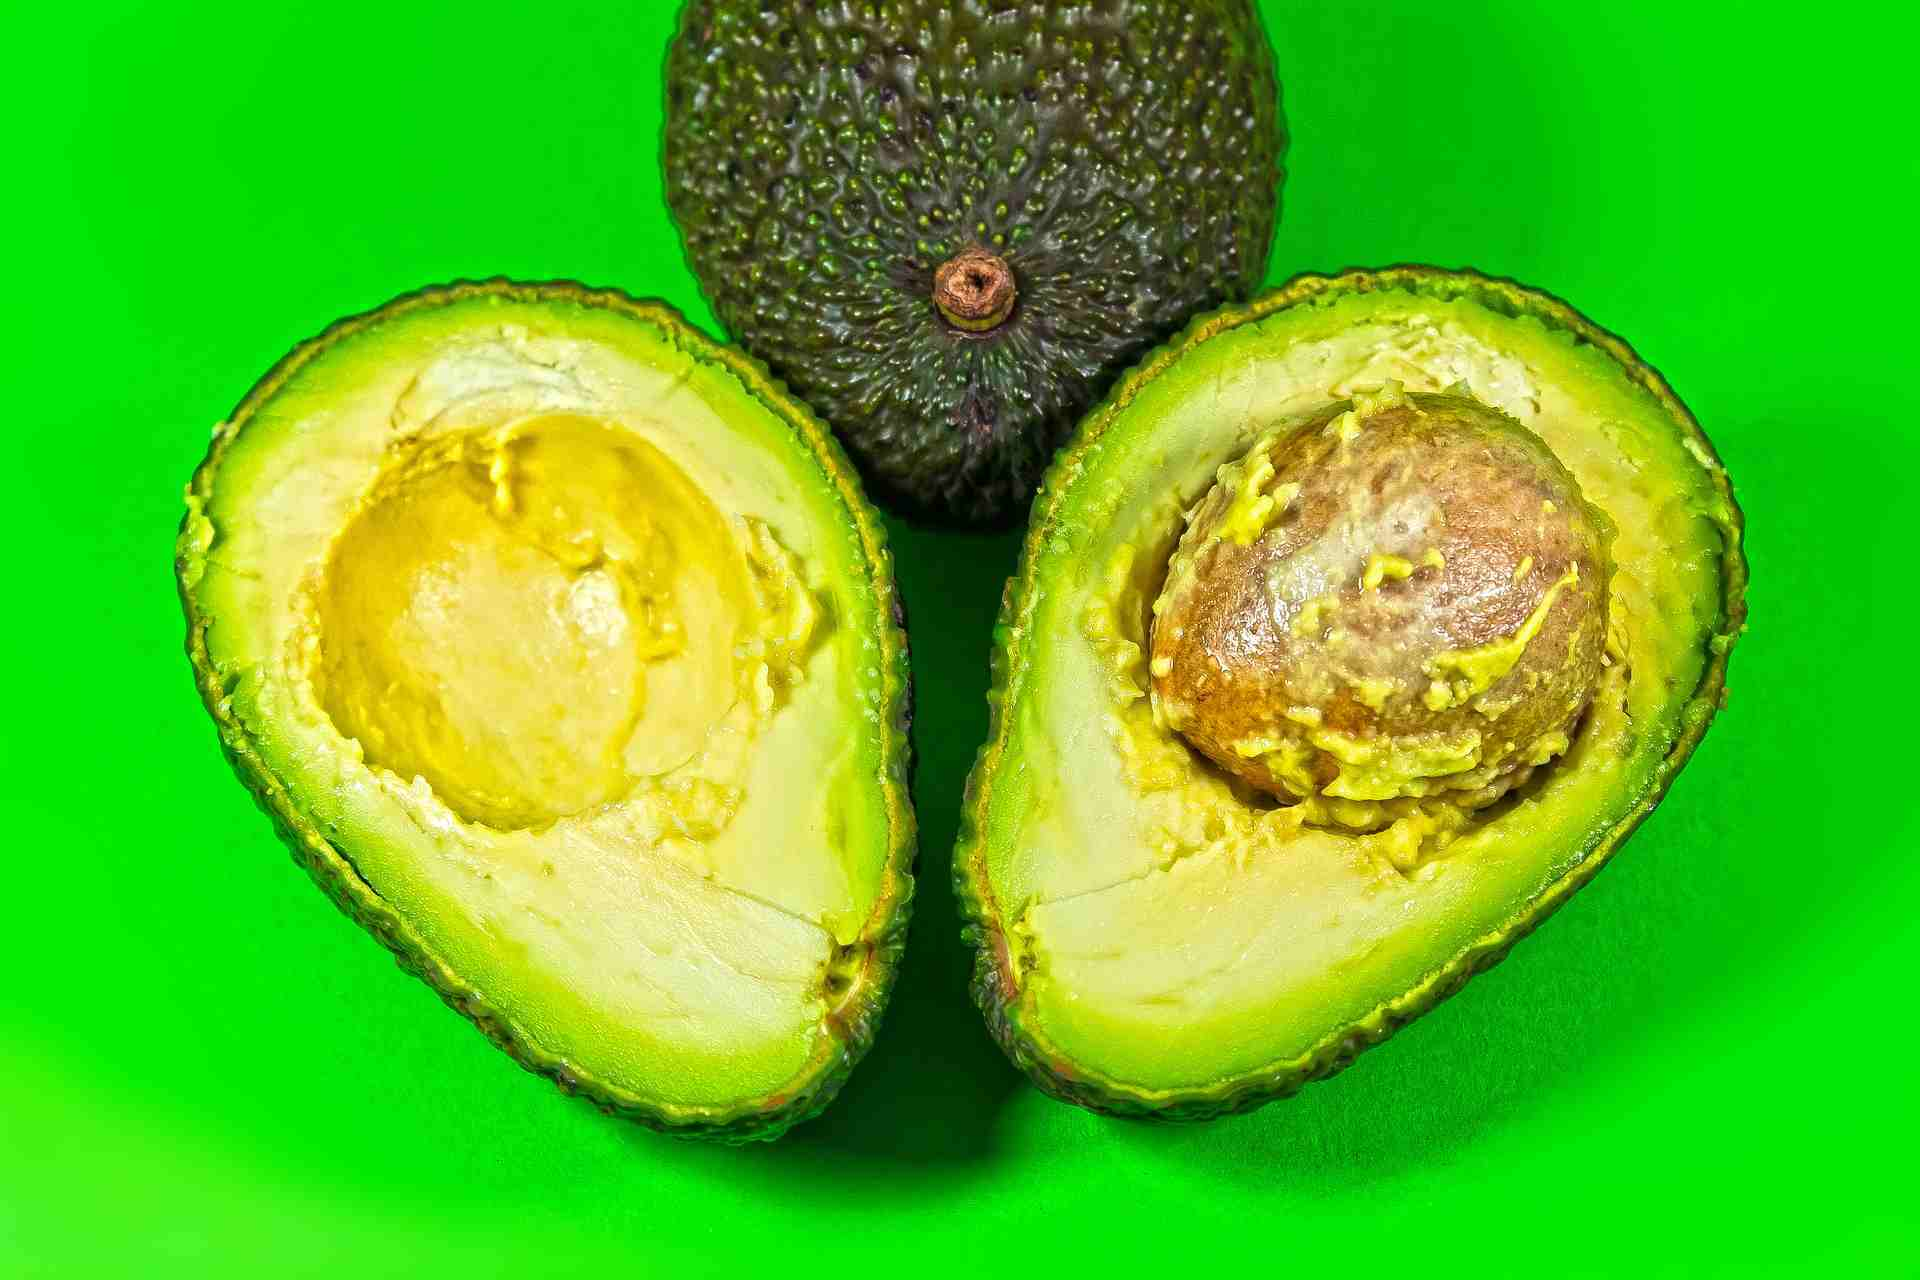 ways to tell if an avocado has gone bad